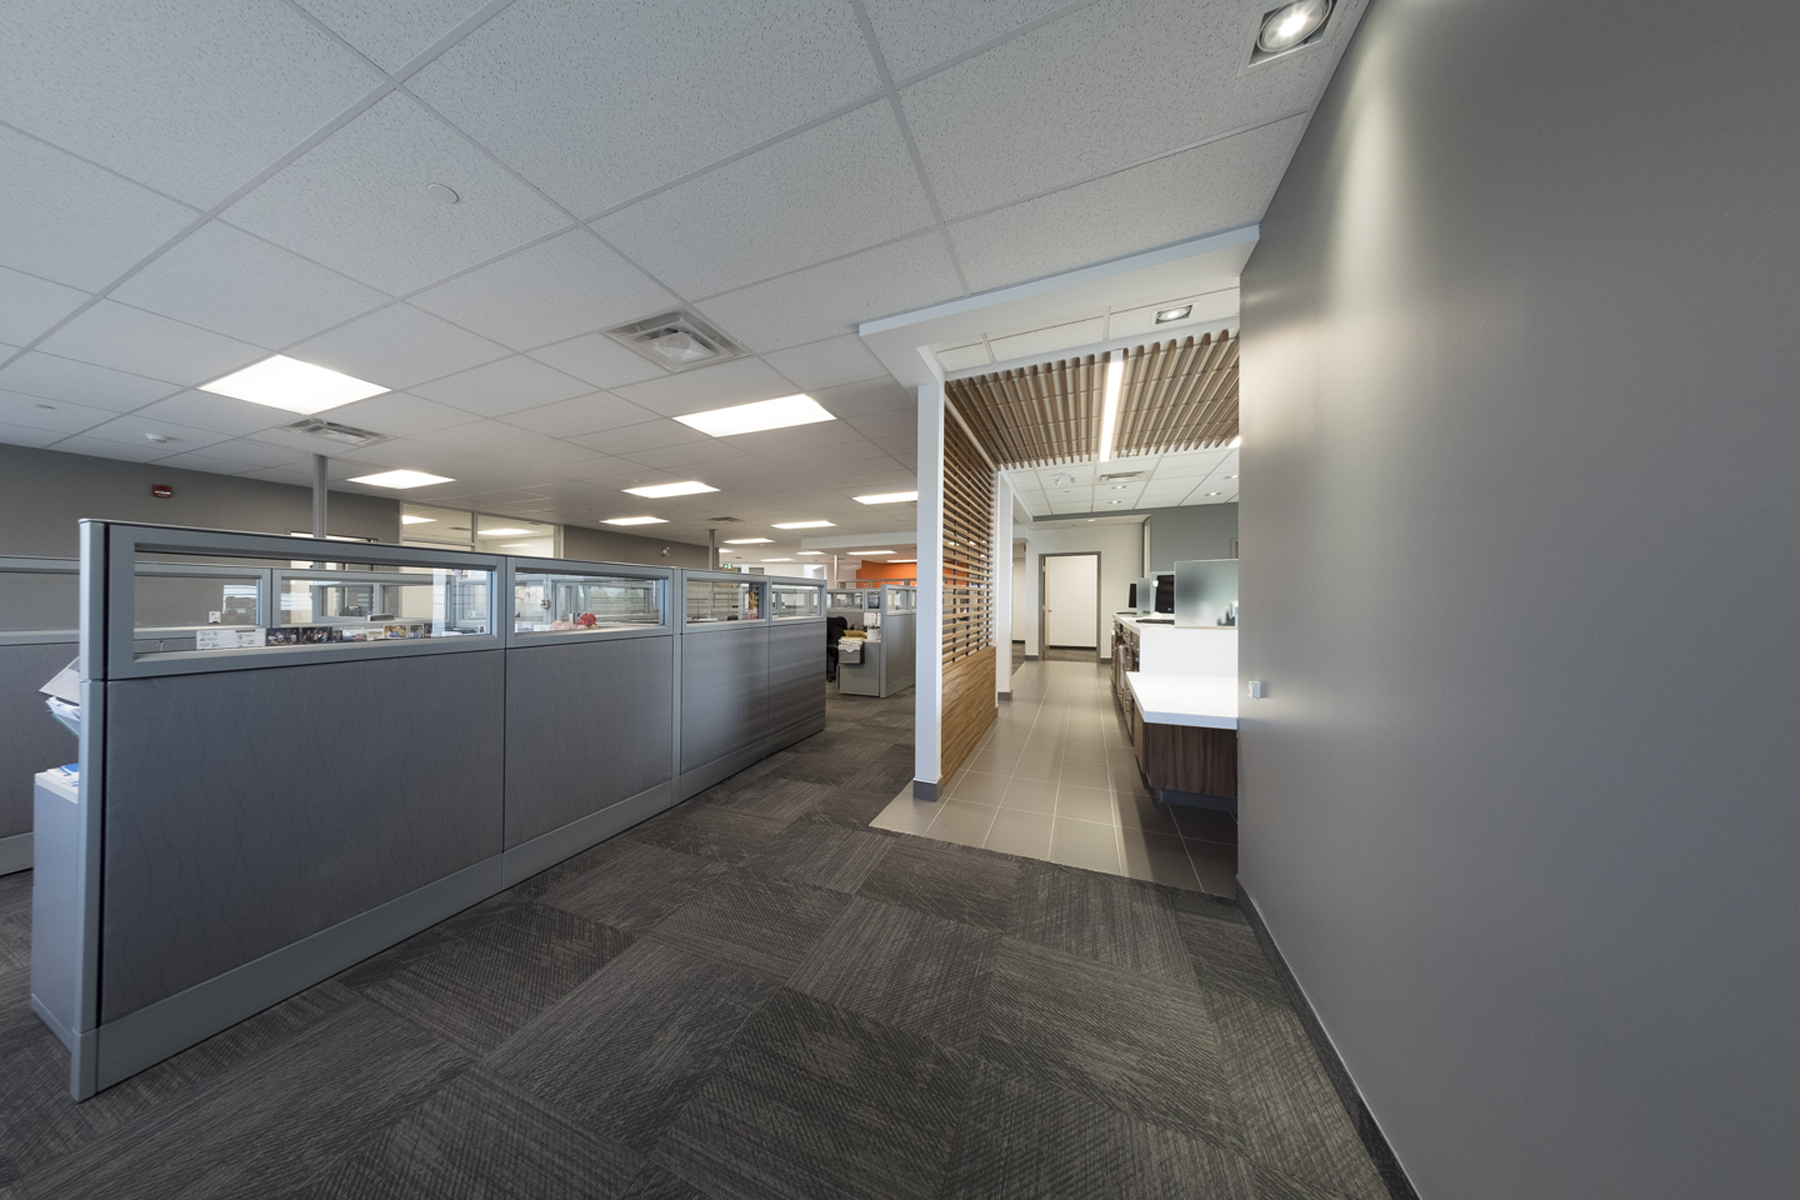 White corridor with partitioned workstations on left and communal kitchen with wood slat feature on right